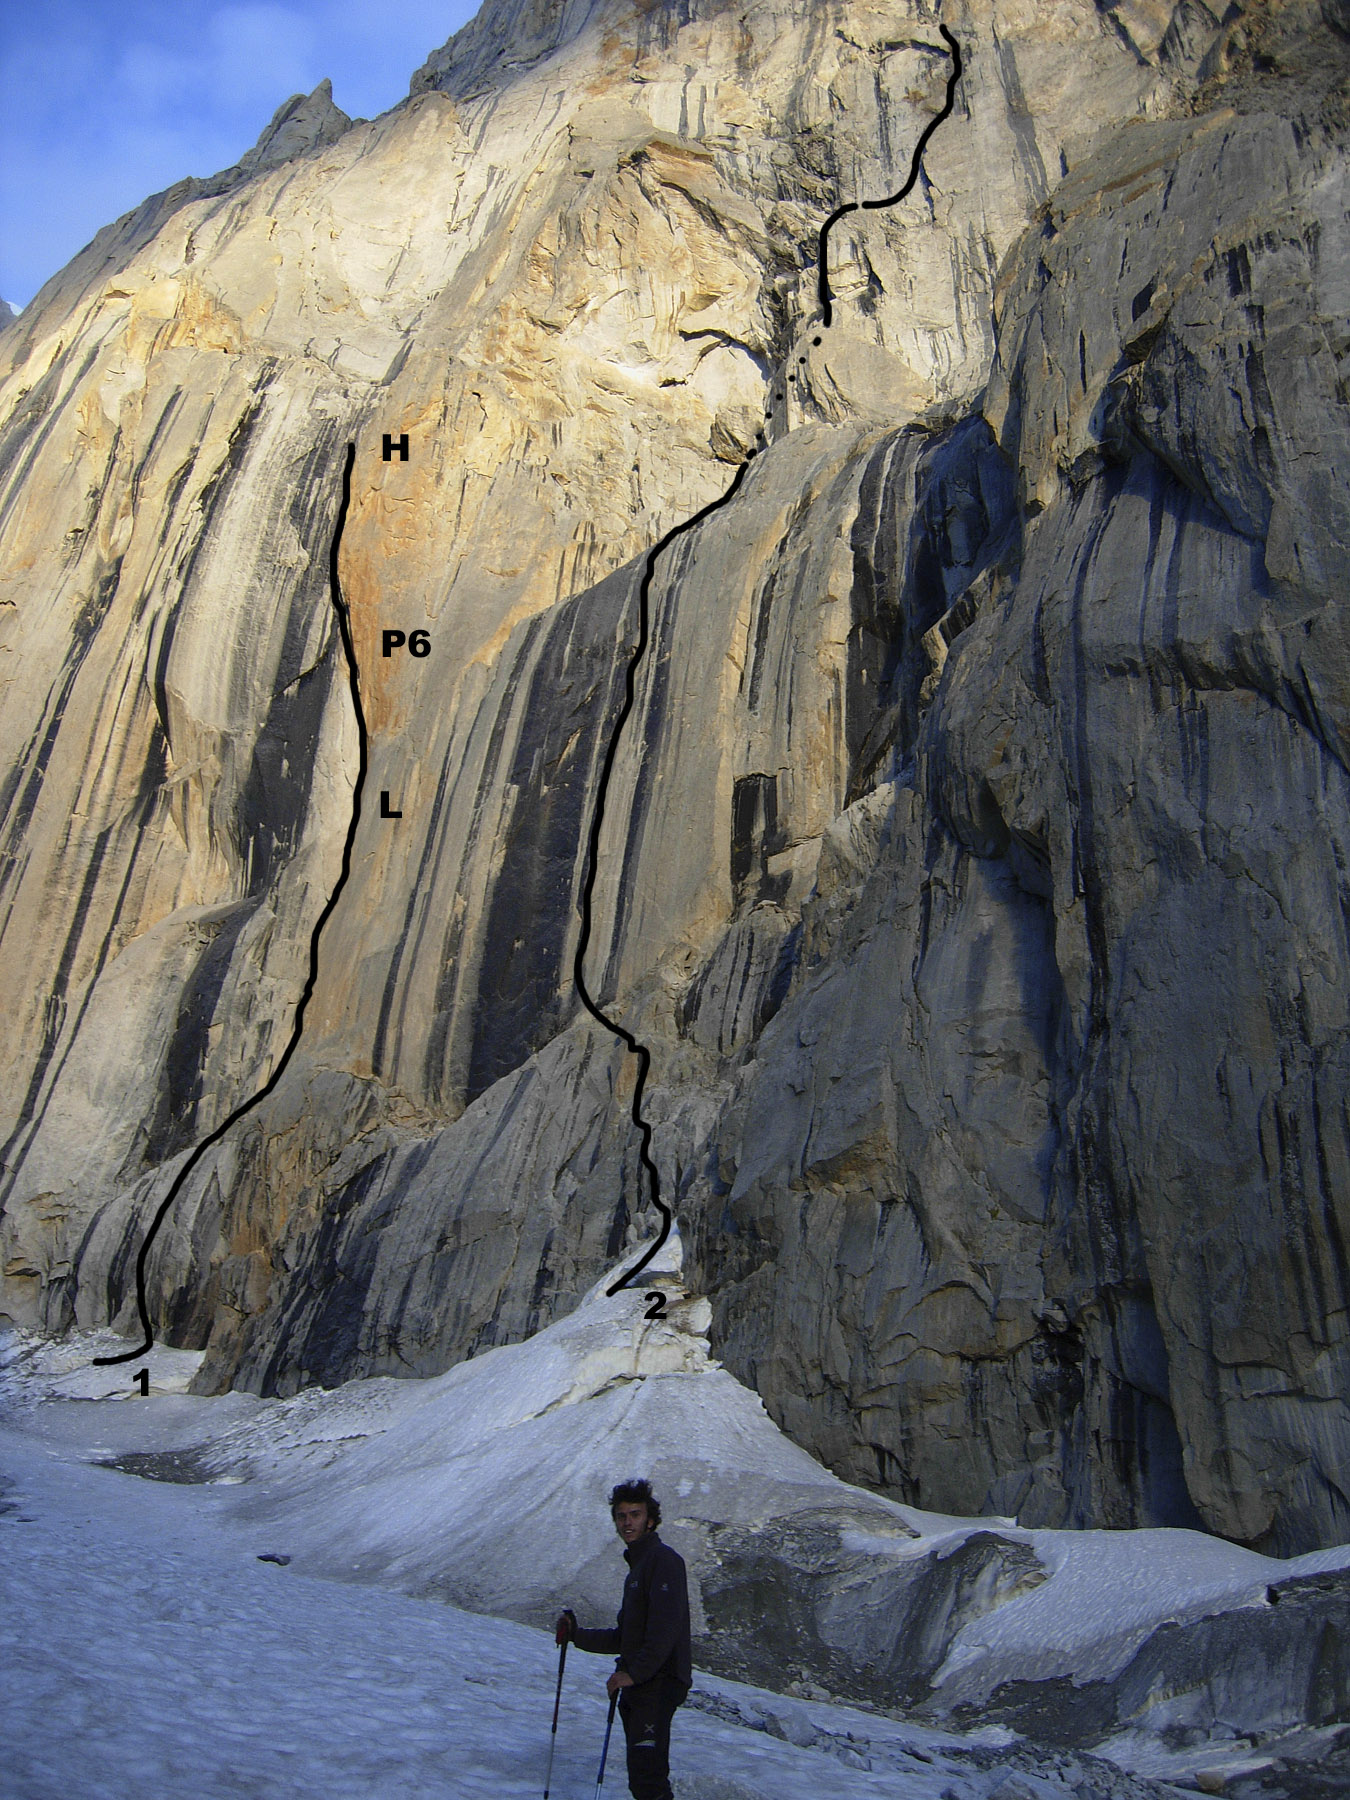 Angelozzi stands below the lower southwest pillar of K7 West. (1) Italian attempt with (L) the site of the portaledge hit by rockfall, (P6) the hard off-width on pitch six, and (H) the high point. (2) the approximate line of Badal.